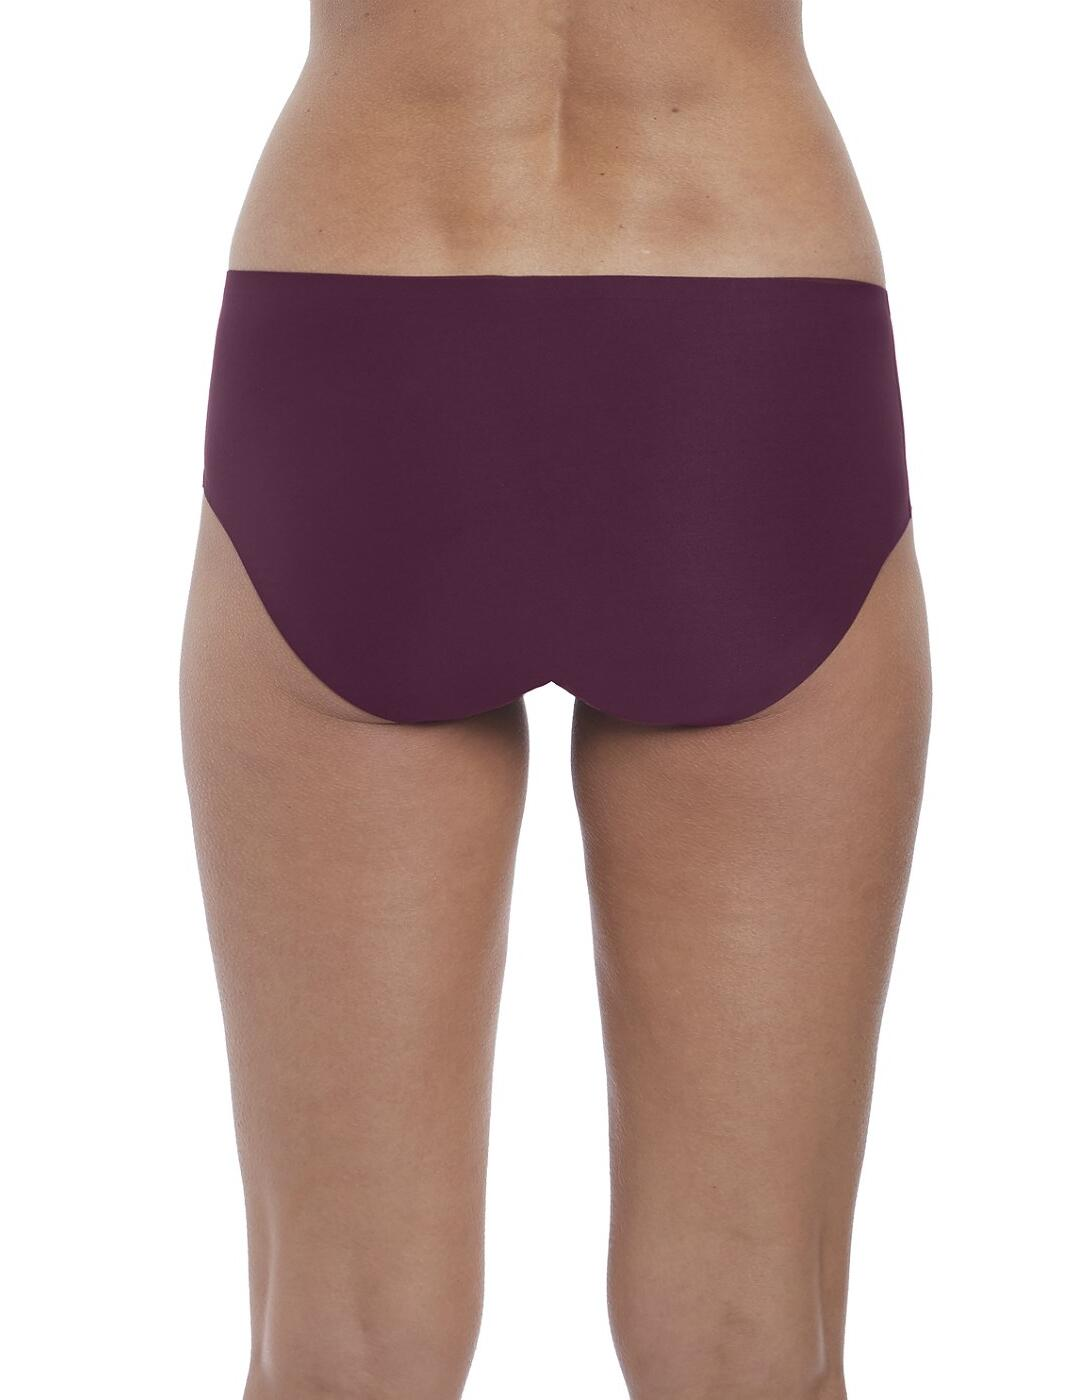 Fantasie Smoothease Invisible Stretch Brief Knickers 2329 One Size Fits 8-16